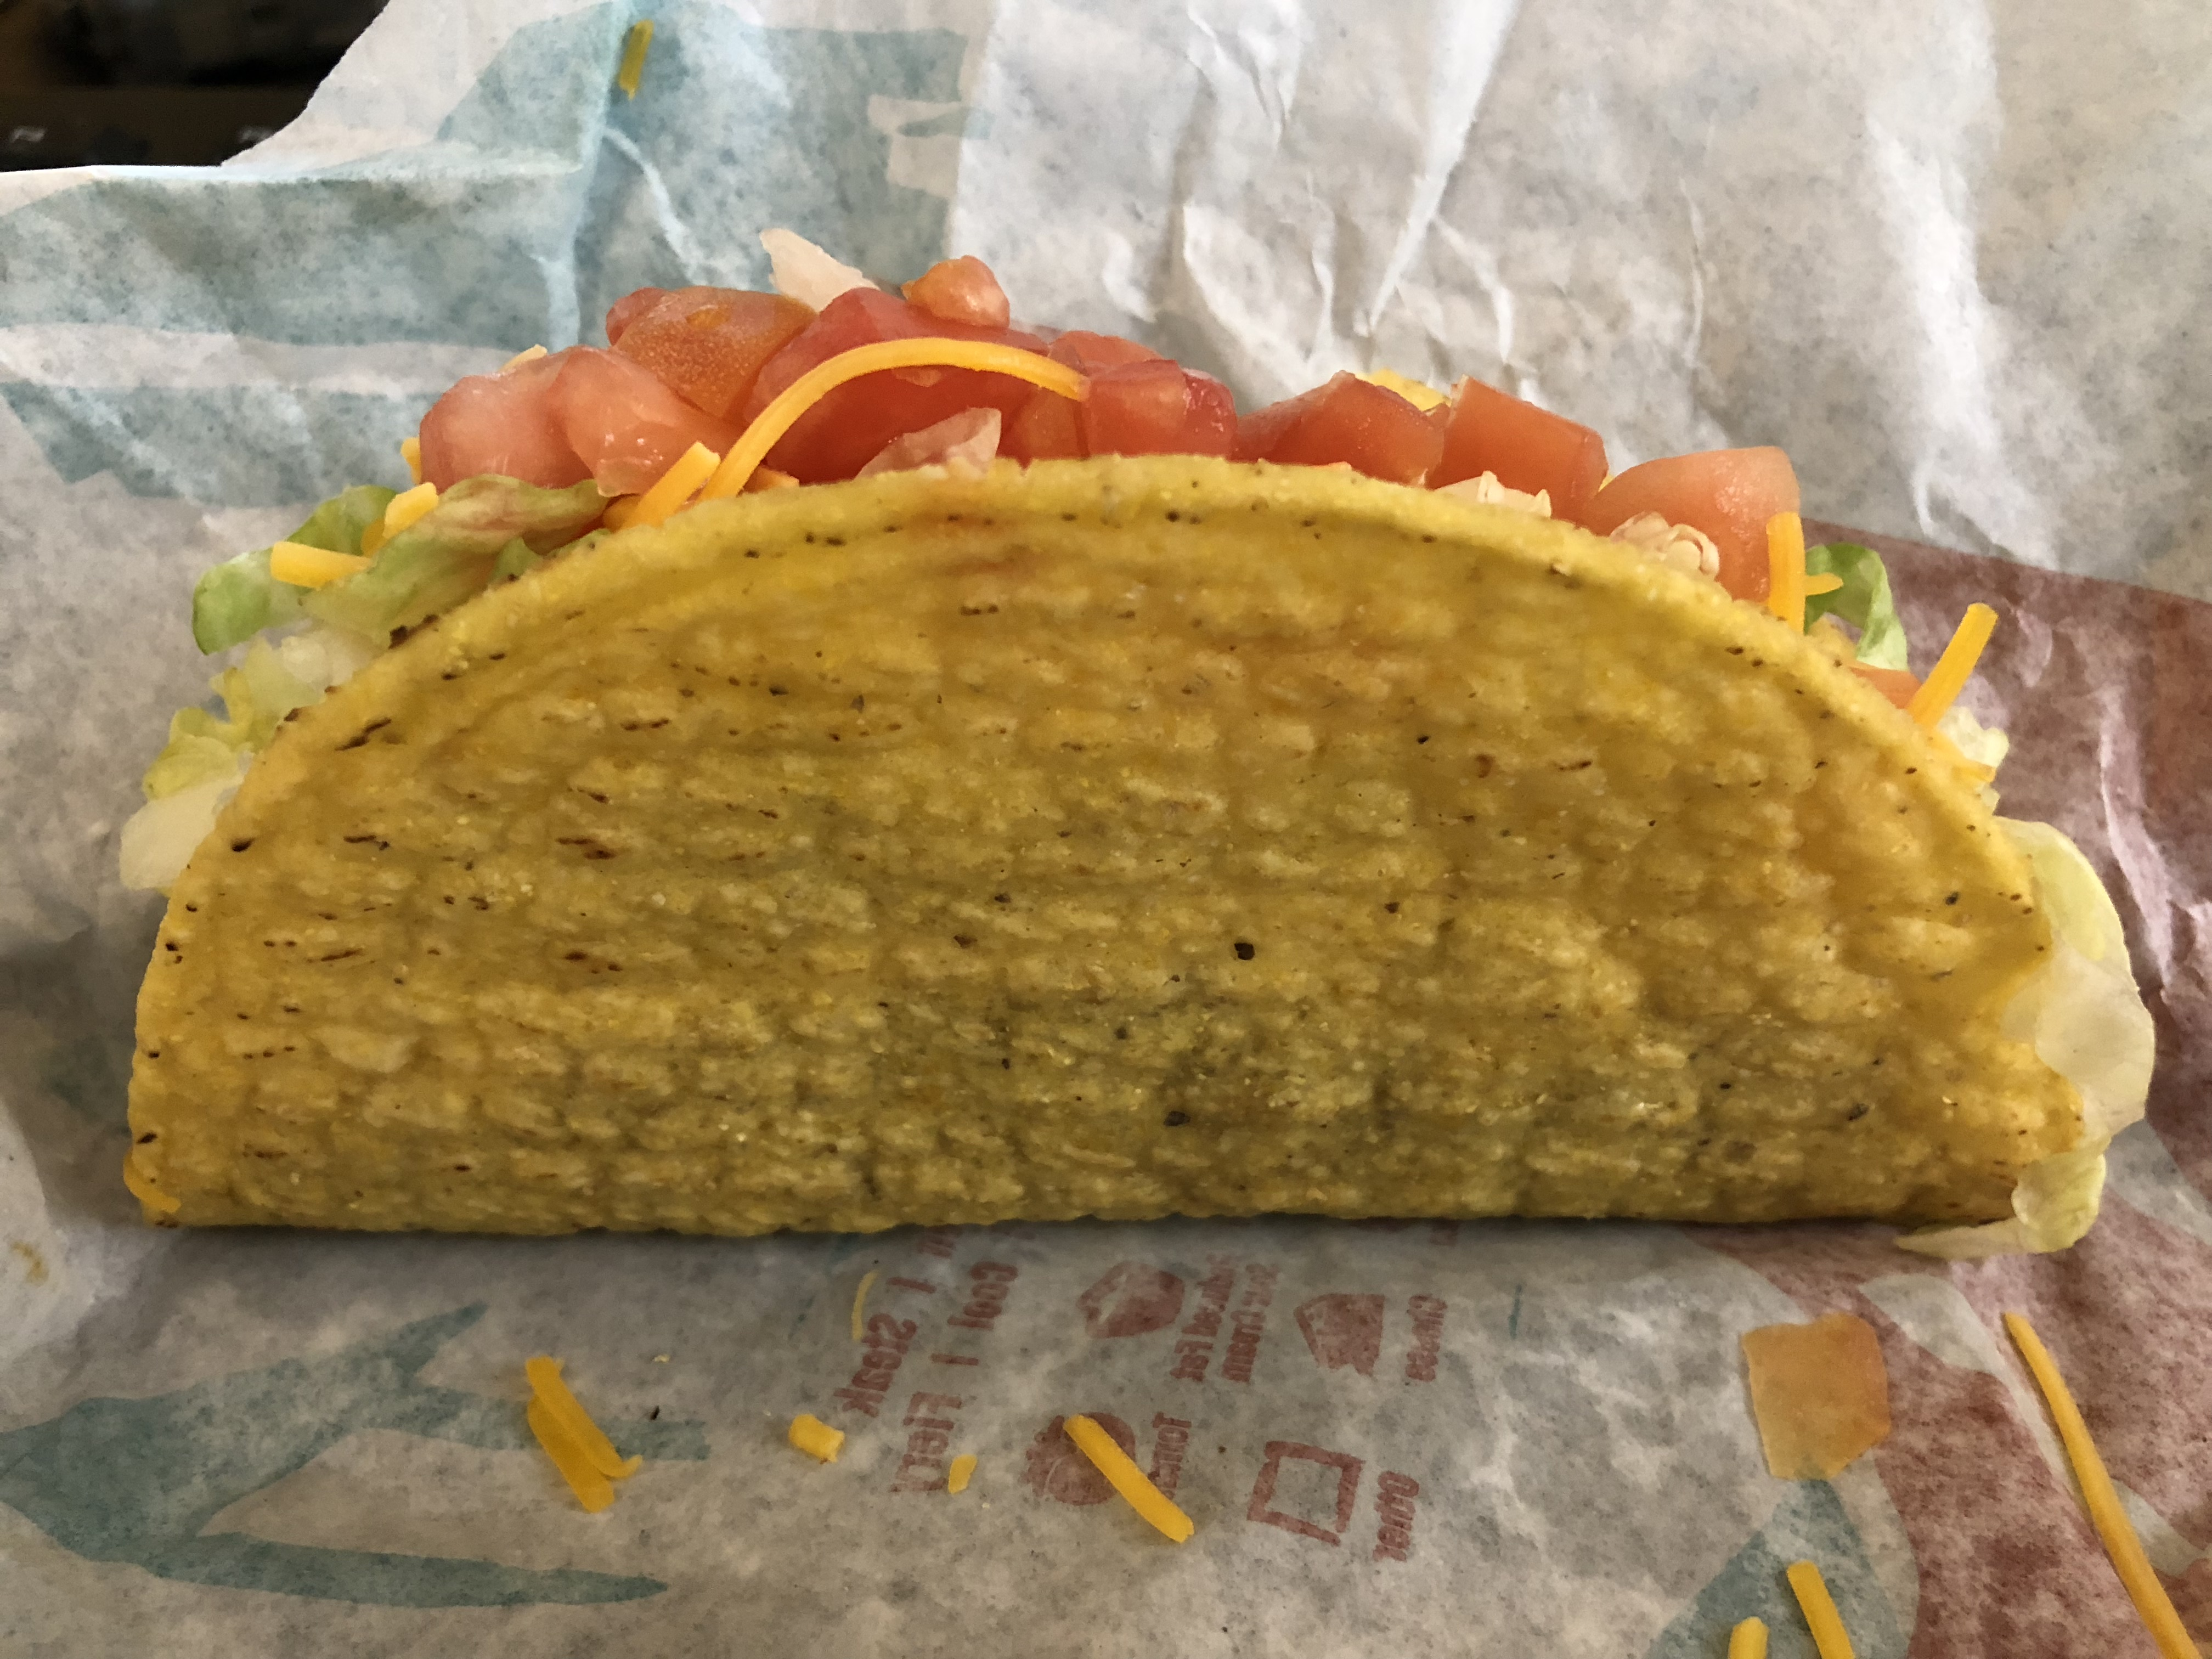 A Crunchy Taco Supreme from Taco Bell. Photo by Famartin [CC BY-SA (https://creativecommons.org/licenses/by-sa/4.0)].